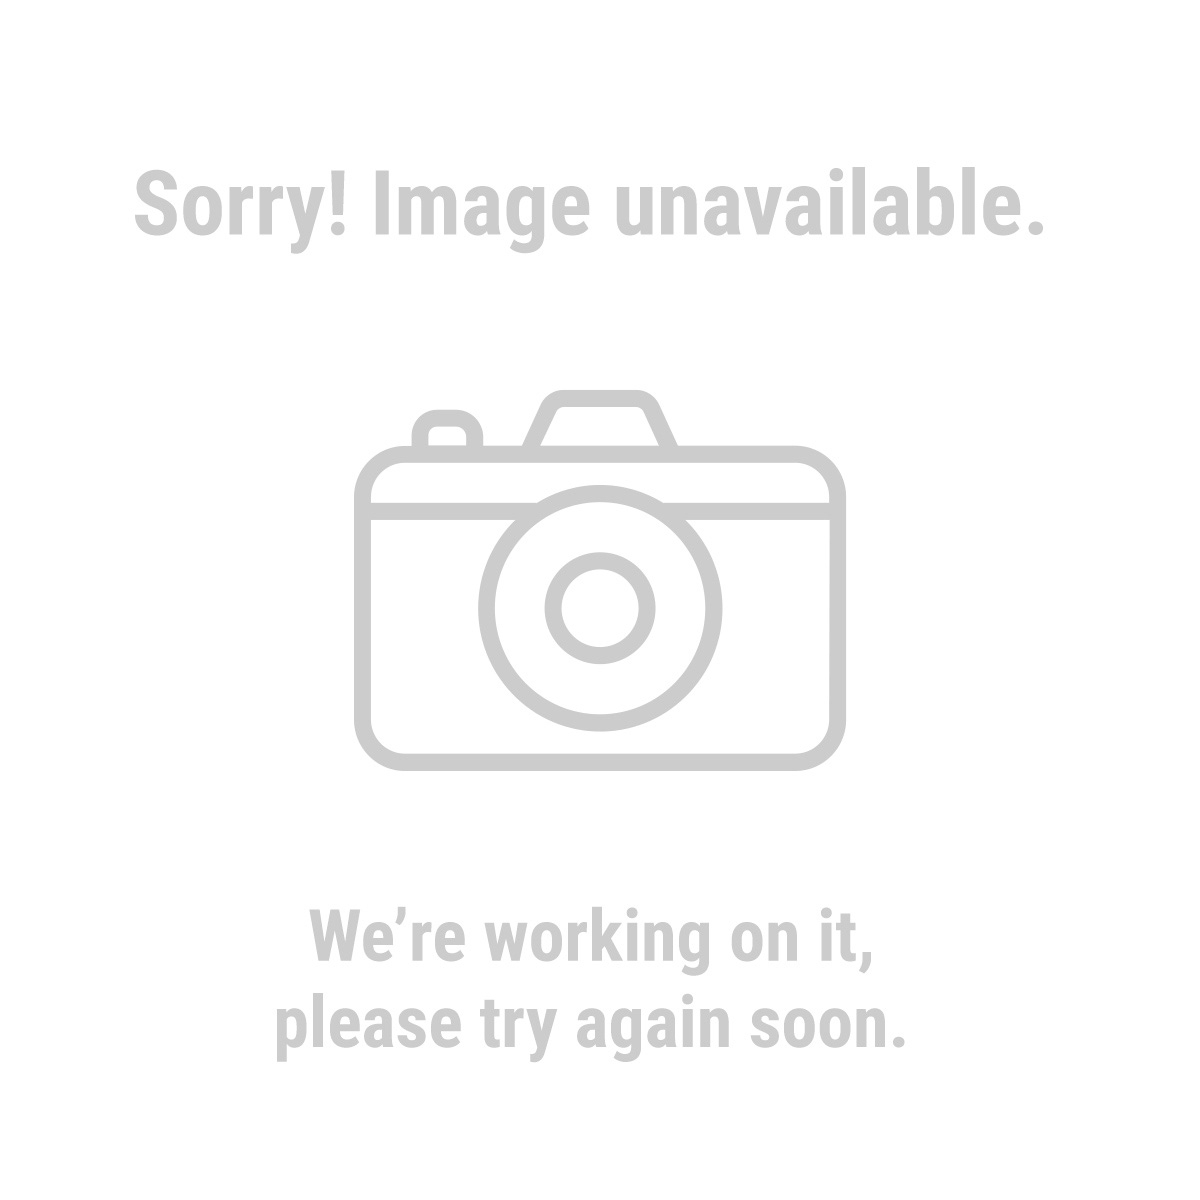 1000 Watt Twin Lamp Halogen Floodlight